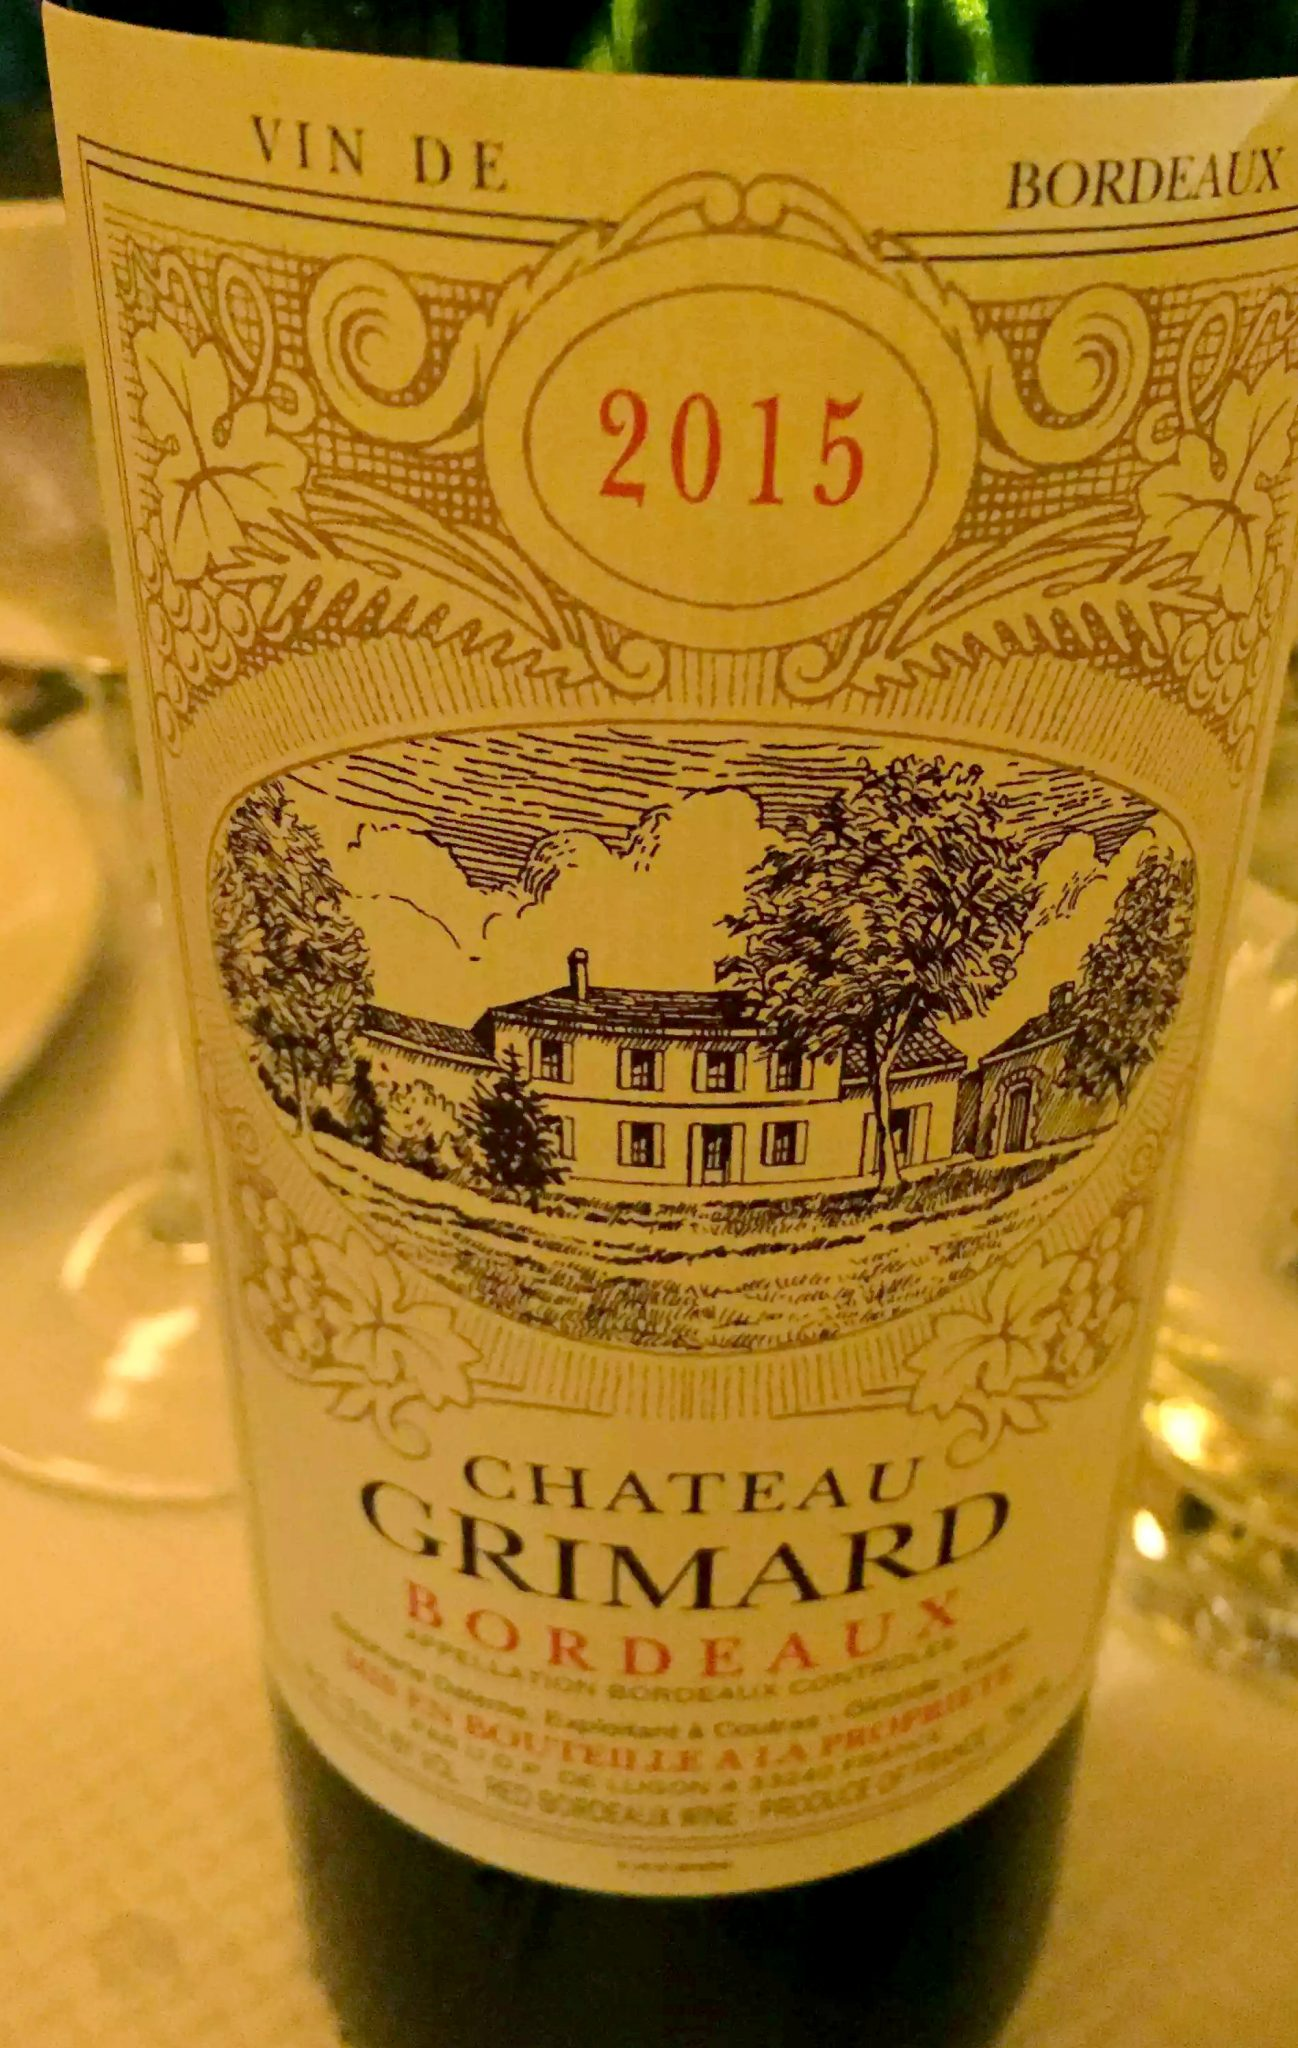 Balthazar Restaurant Covent Garden, London Chateau Grimard Bordeaux